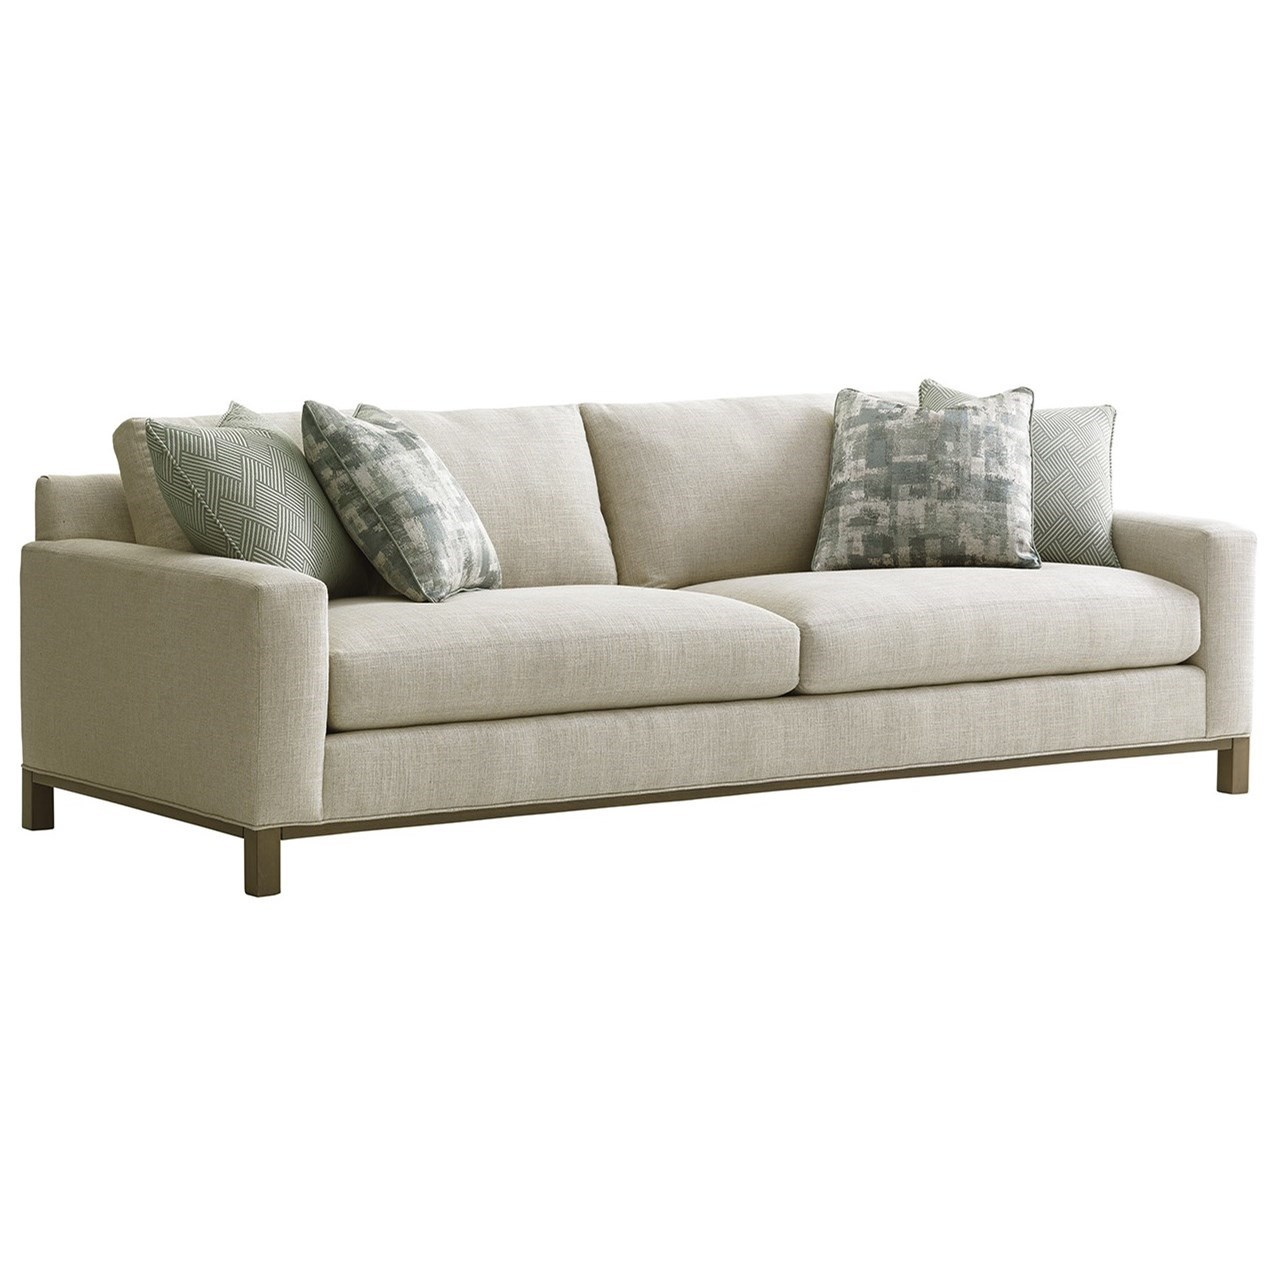 Upholstery Chronicle Sofa by Lexington at Baer's Furniture